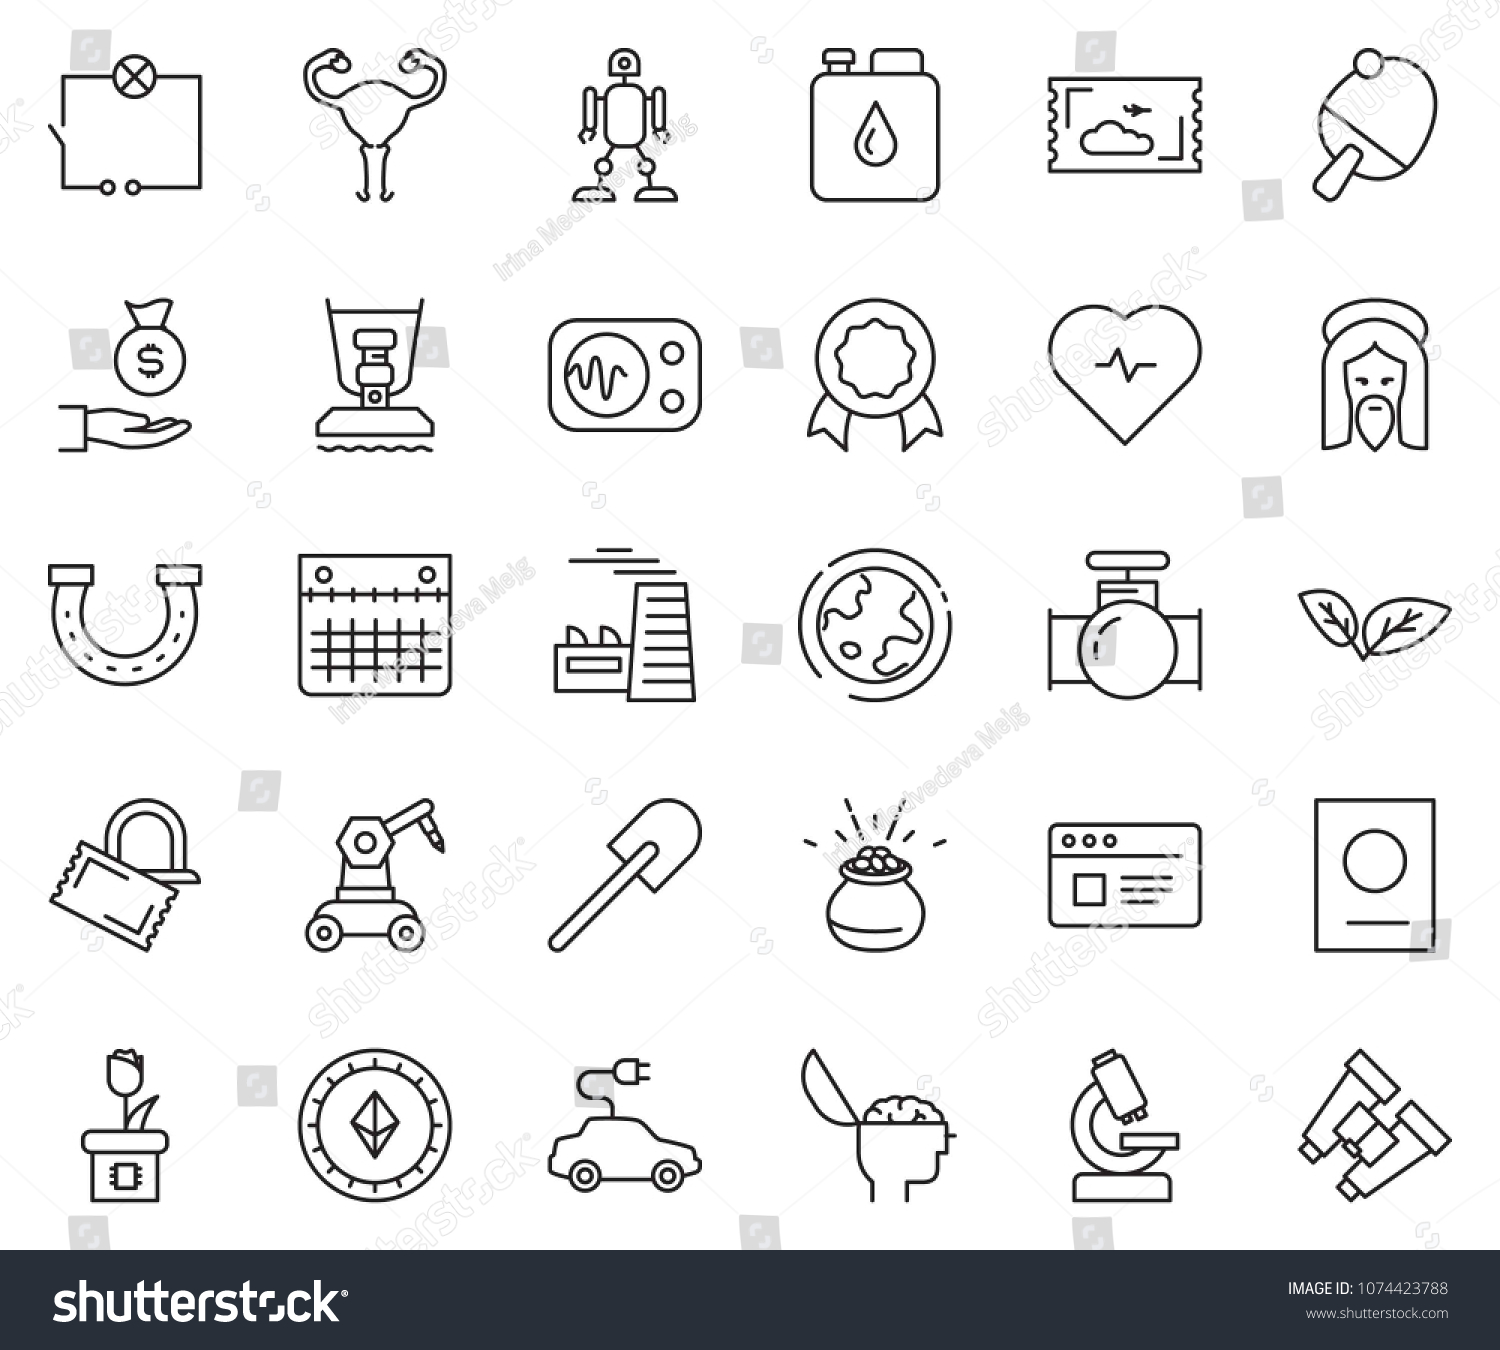 thin line icon set - brain vector, factory, etherium sign, investment,  wiring